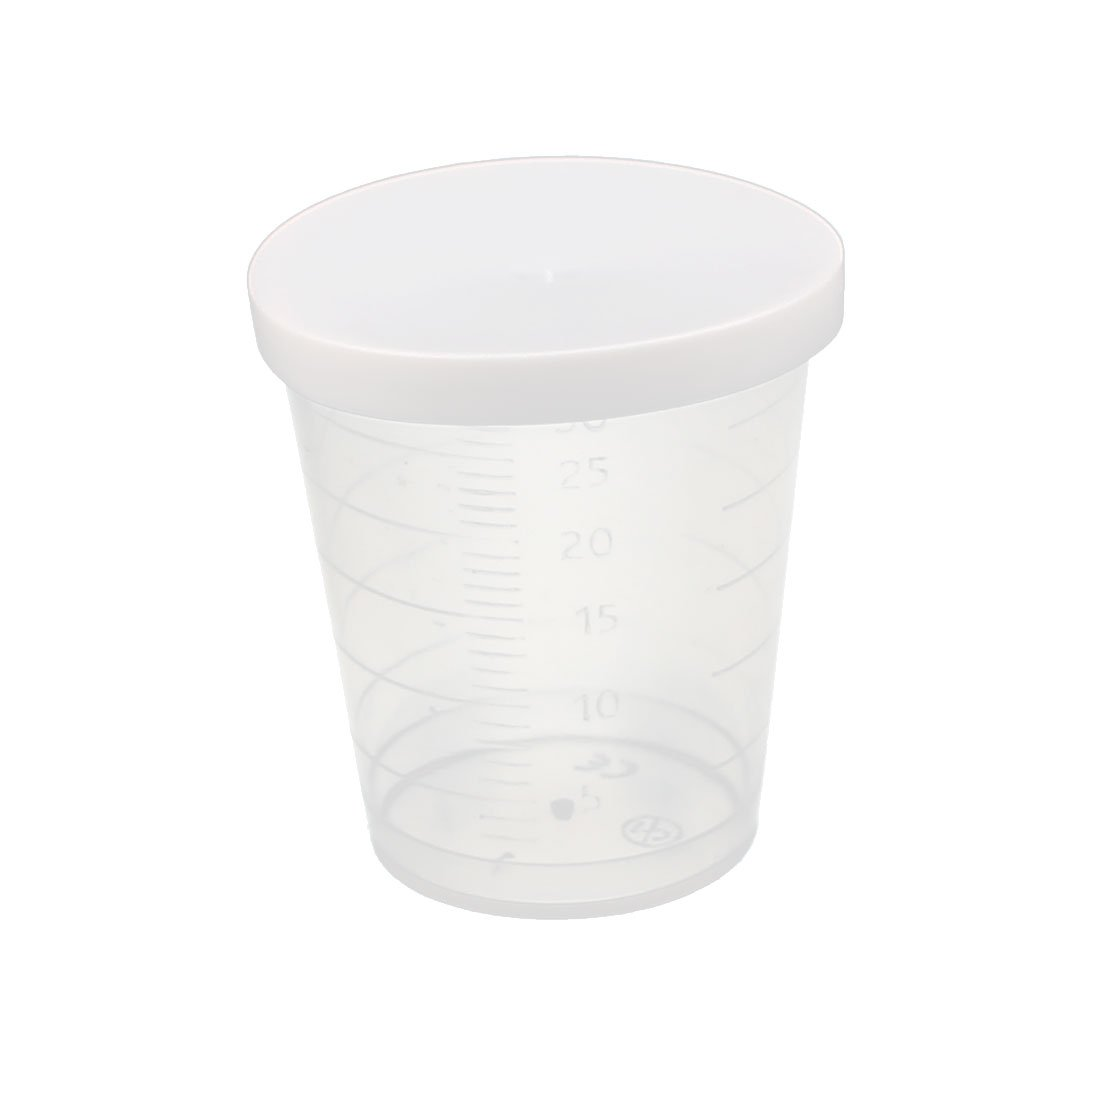 uxcell 30mL Laboratory Transparent Plastic Liquid Container Measuring Cup Beaker